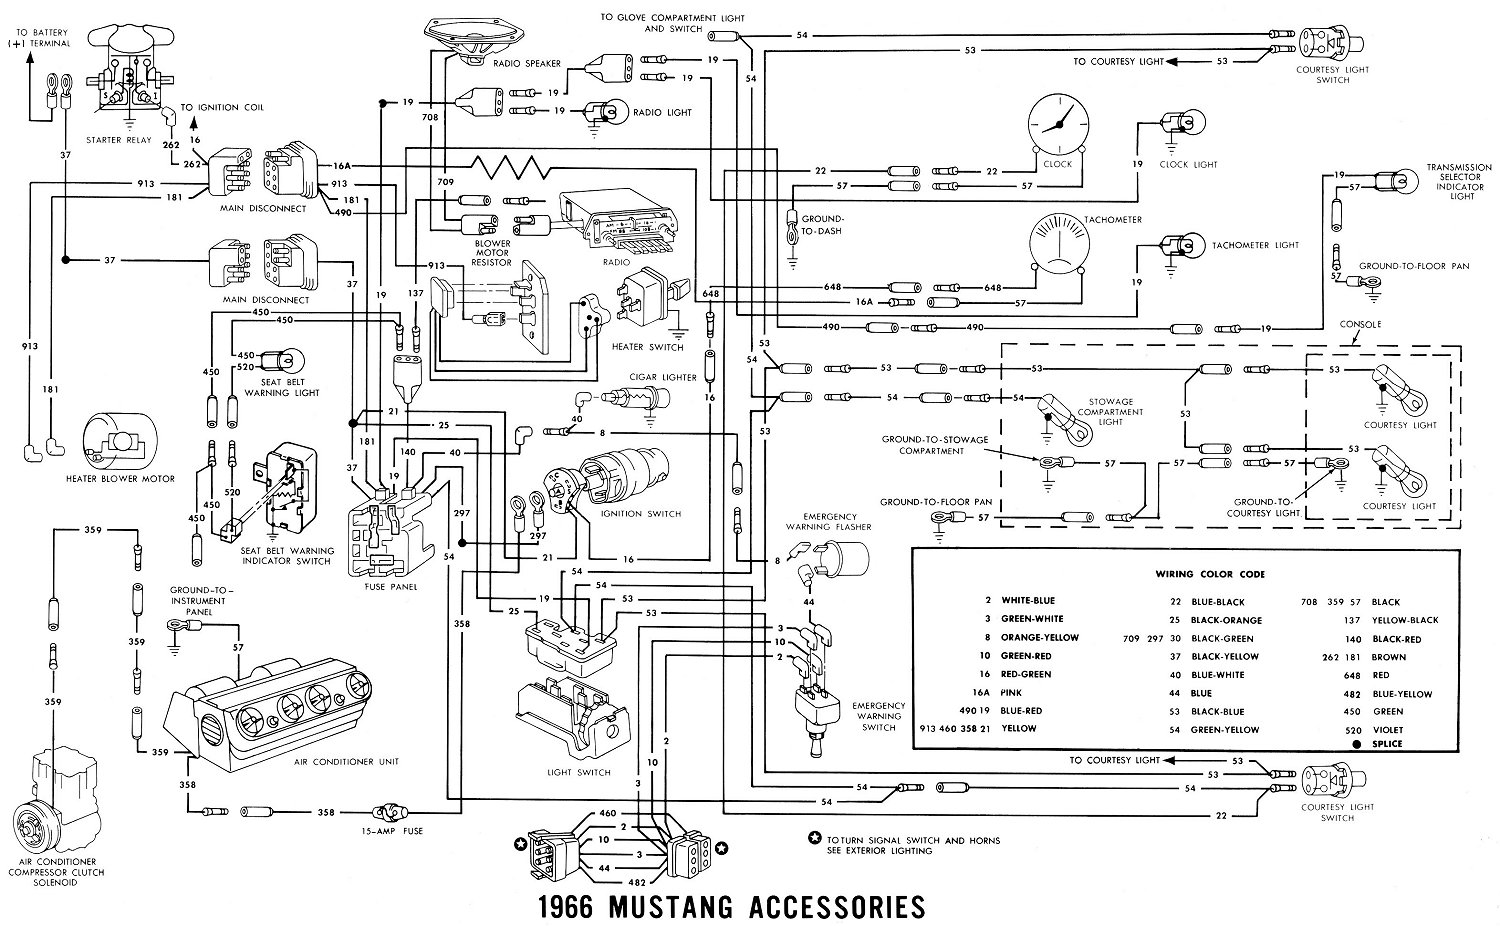 [EQHS_1162]  1966 Mustang Wiring Diagrams - Average Joe Restoration | 2015 Mustang Wiring Diagram |  | Average Joe Restoration